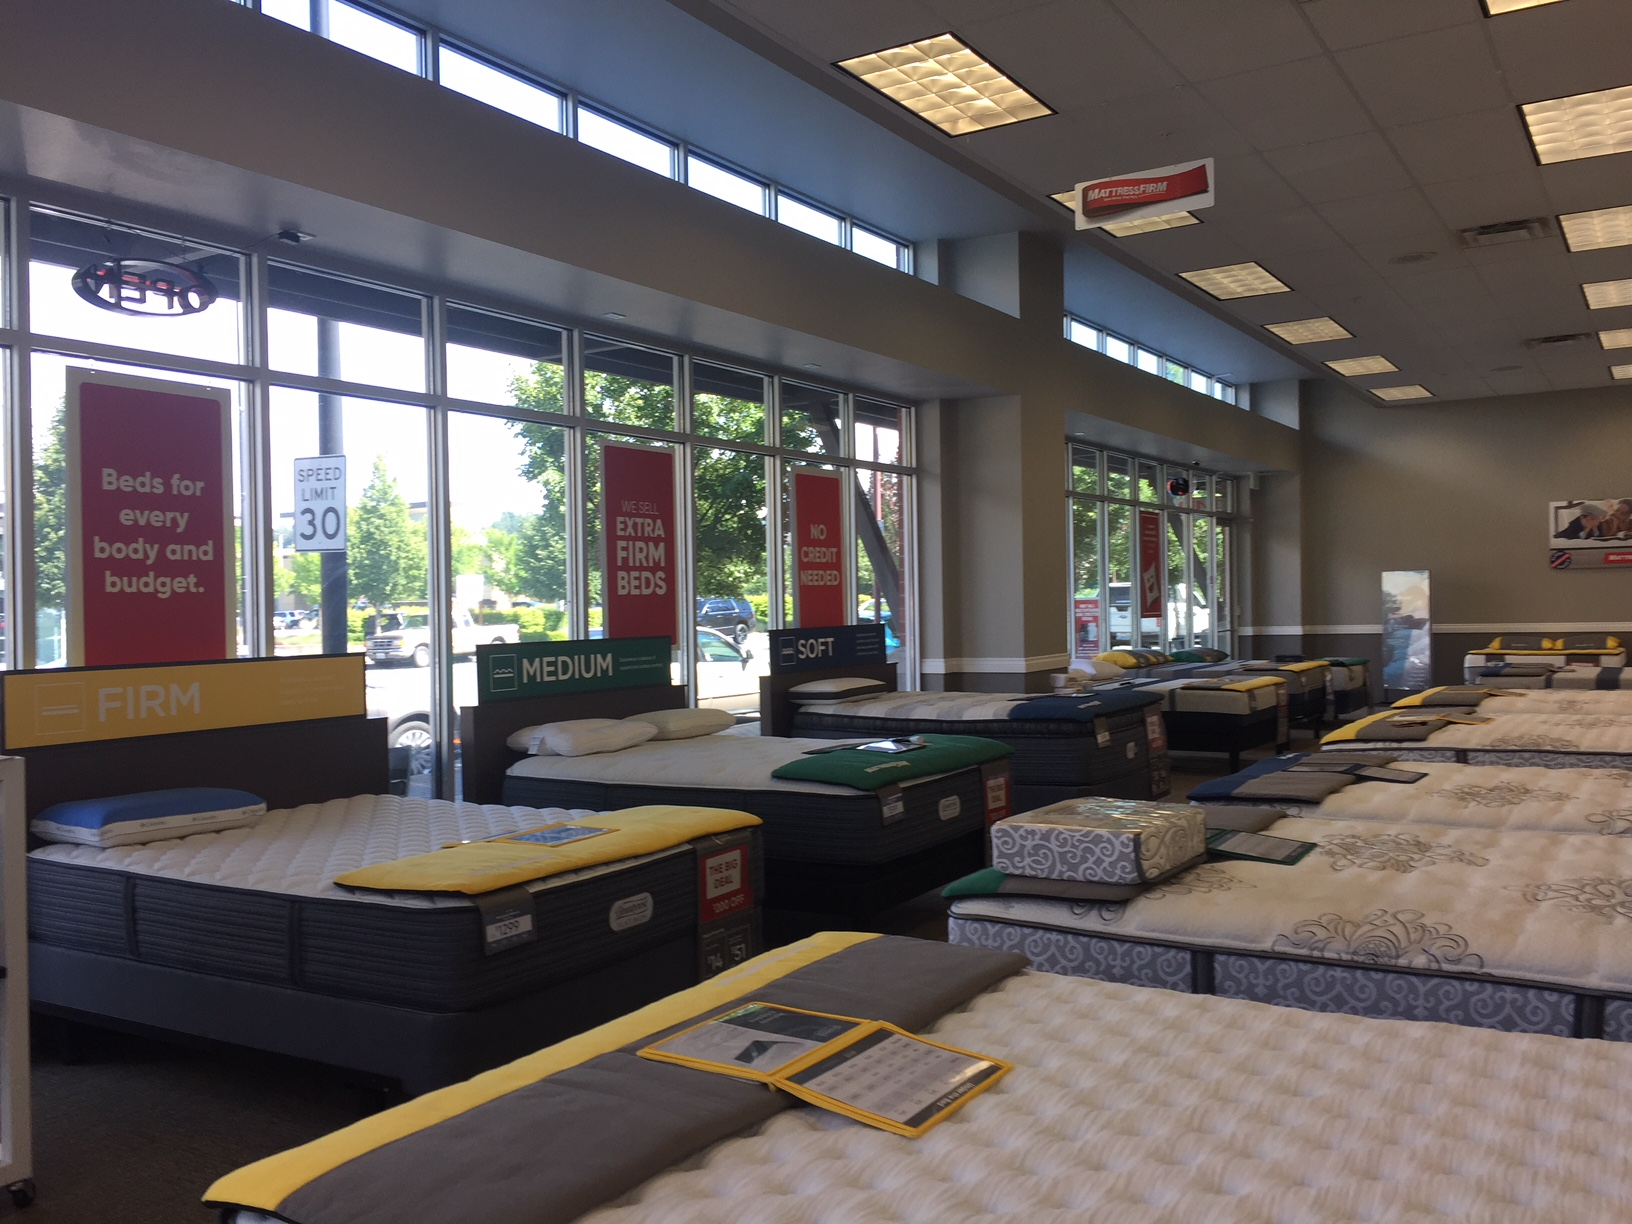 Mattress Firm The Landing image 2